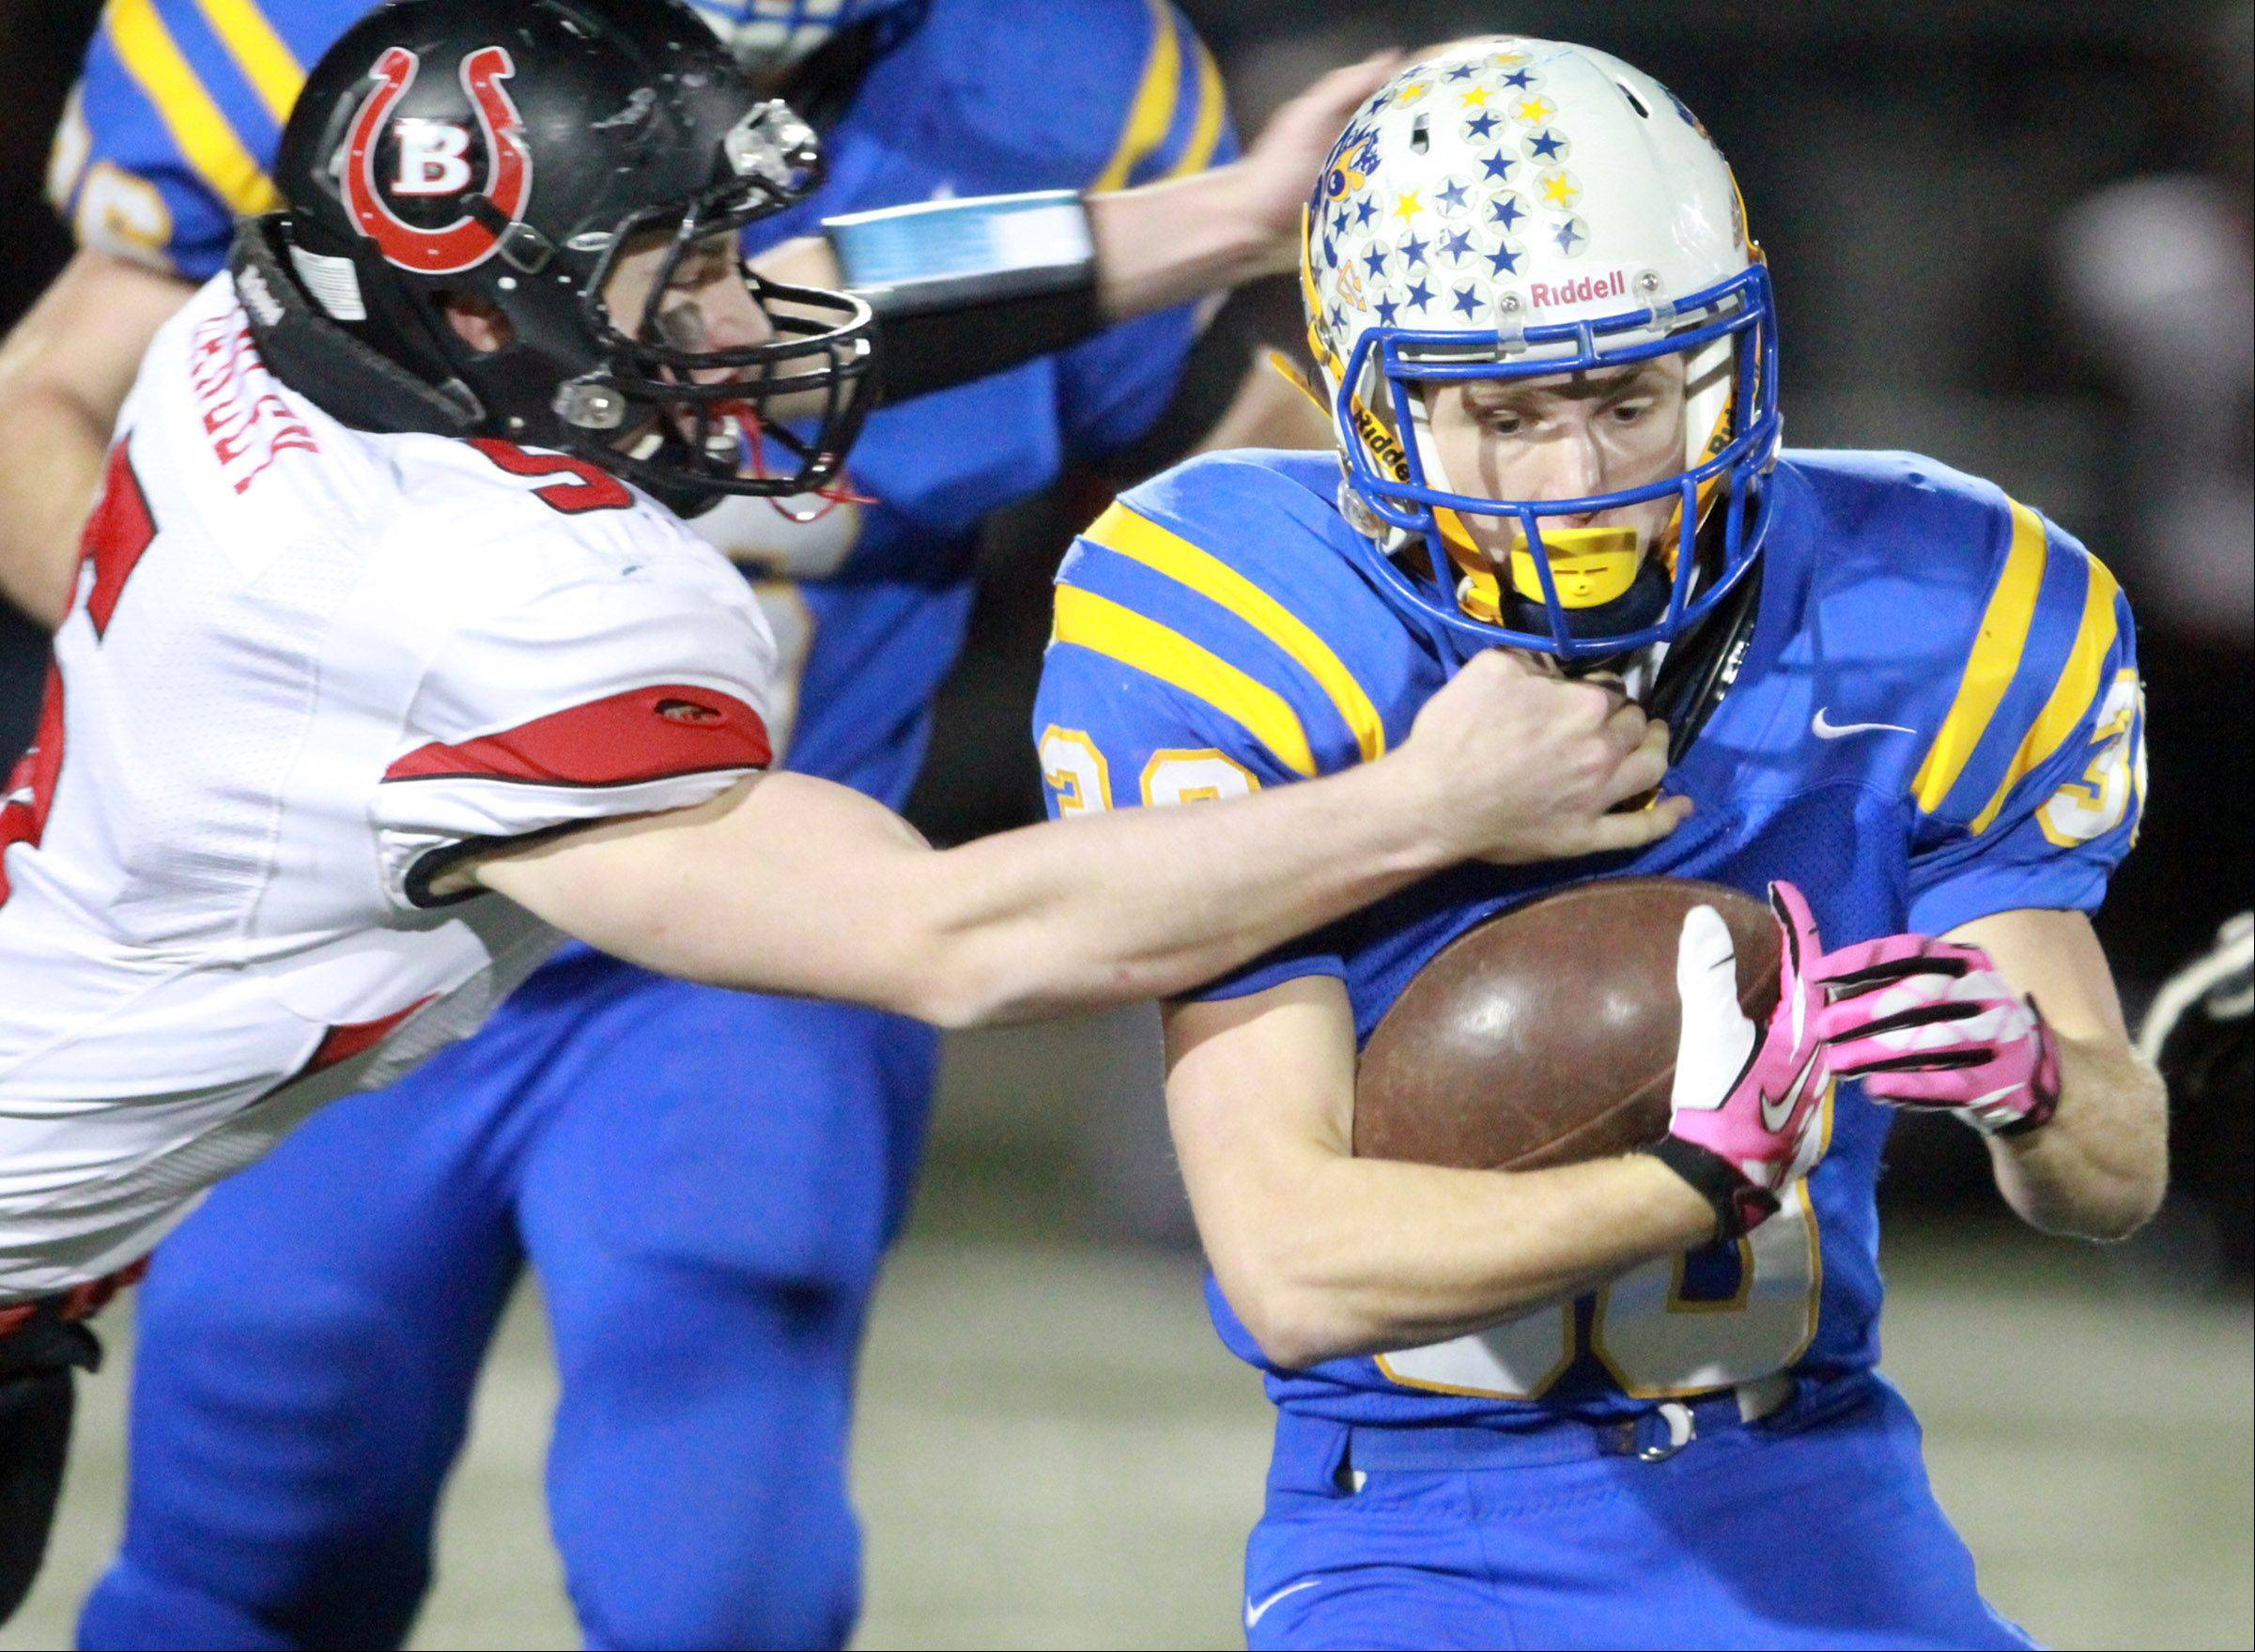 George LeClaire/gleclaire@dailyherald.comWarren running back Maxwell Sorby is dragged down by Barrington defender Dan Hanley in the first half Saturday in Gurnee.